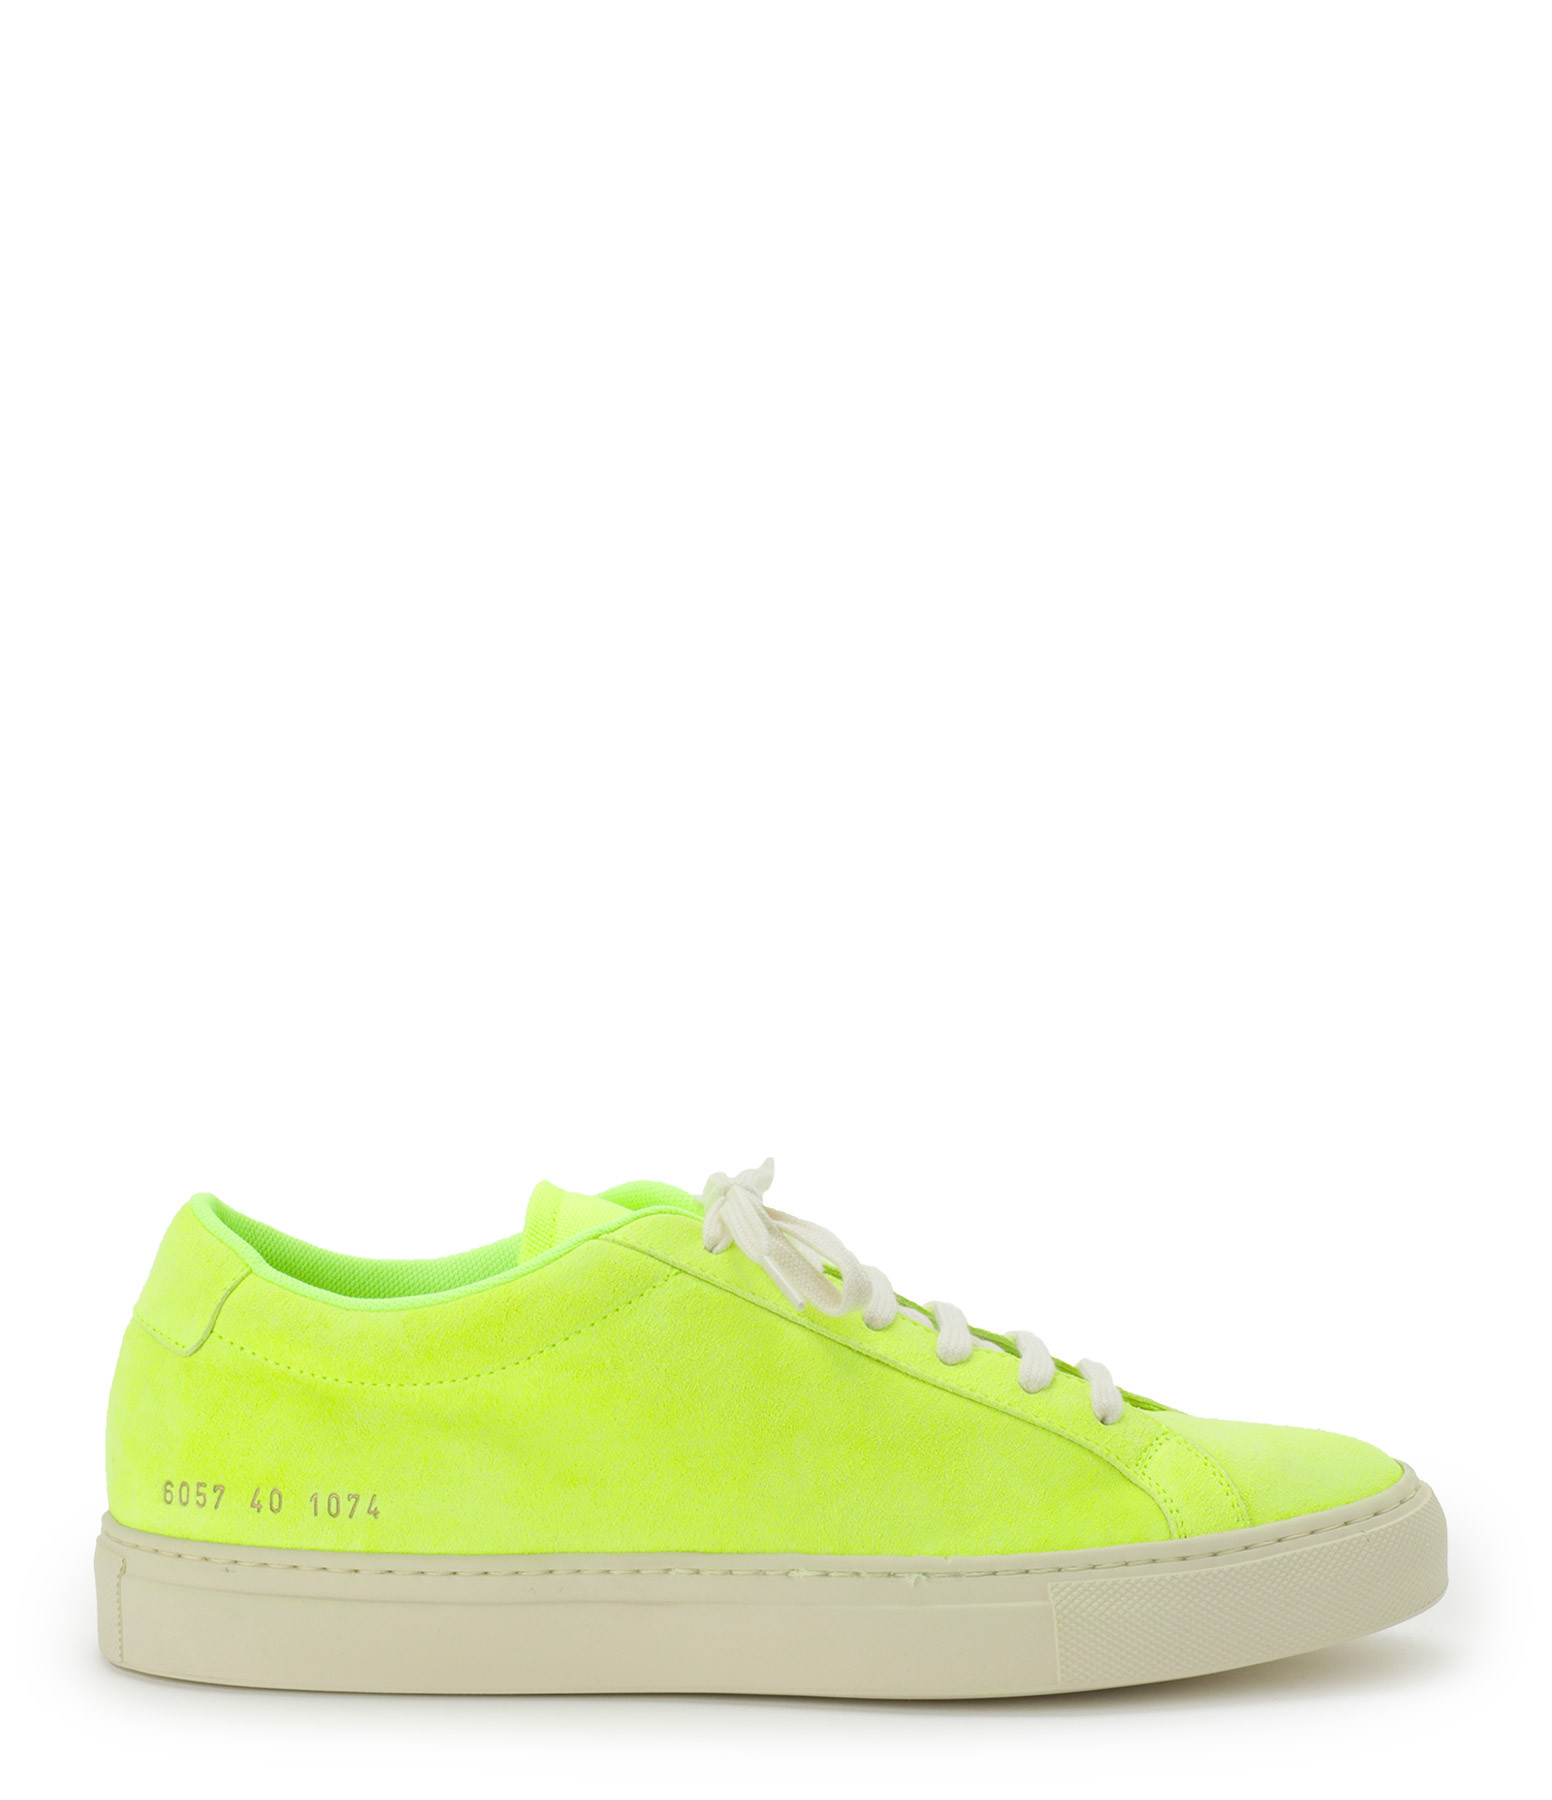 COMMON PROJECTS - Baskets Achilles Fluo Cuir Jaune